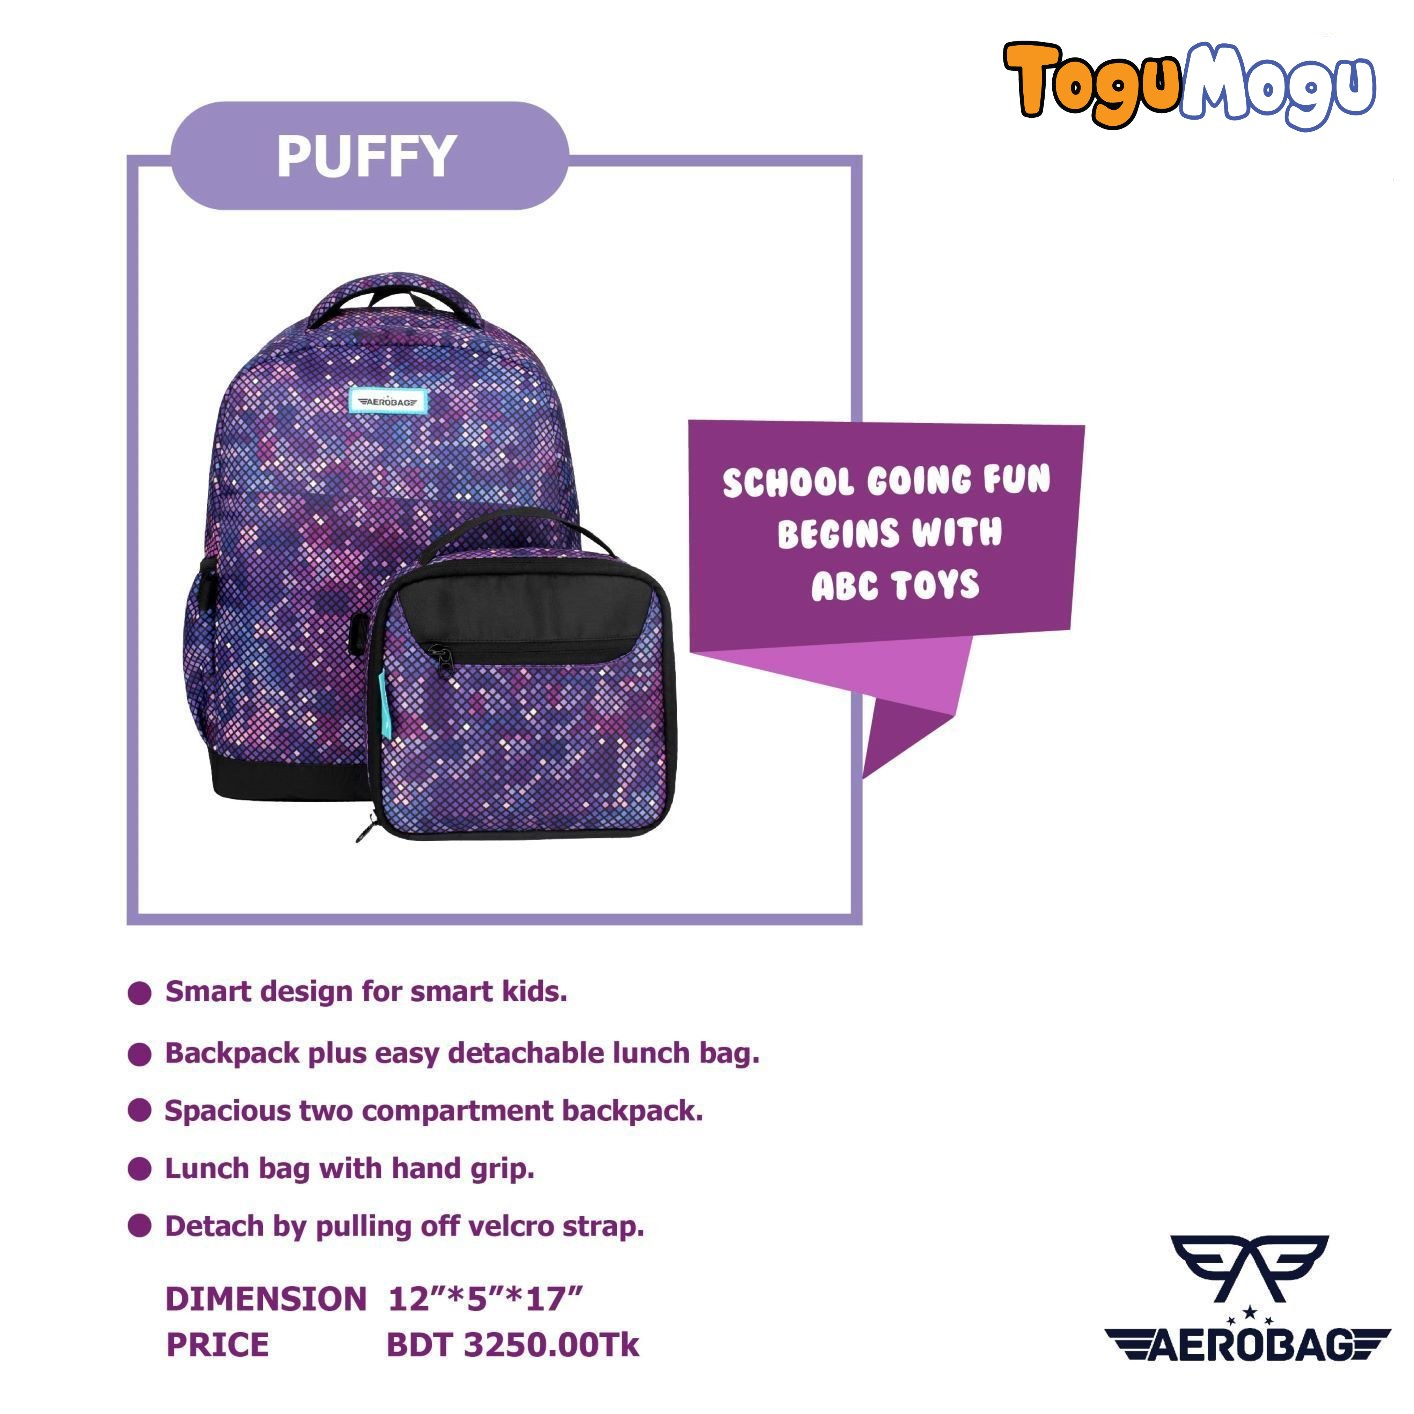 AEROBAG AER052 Puffy Purple